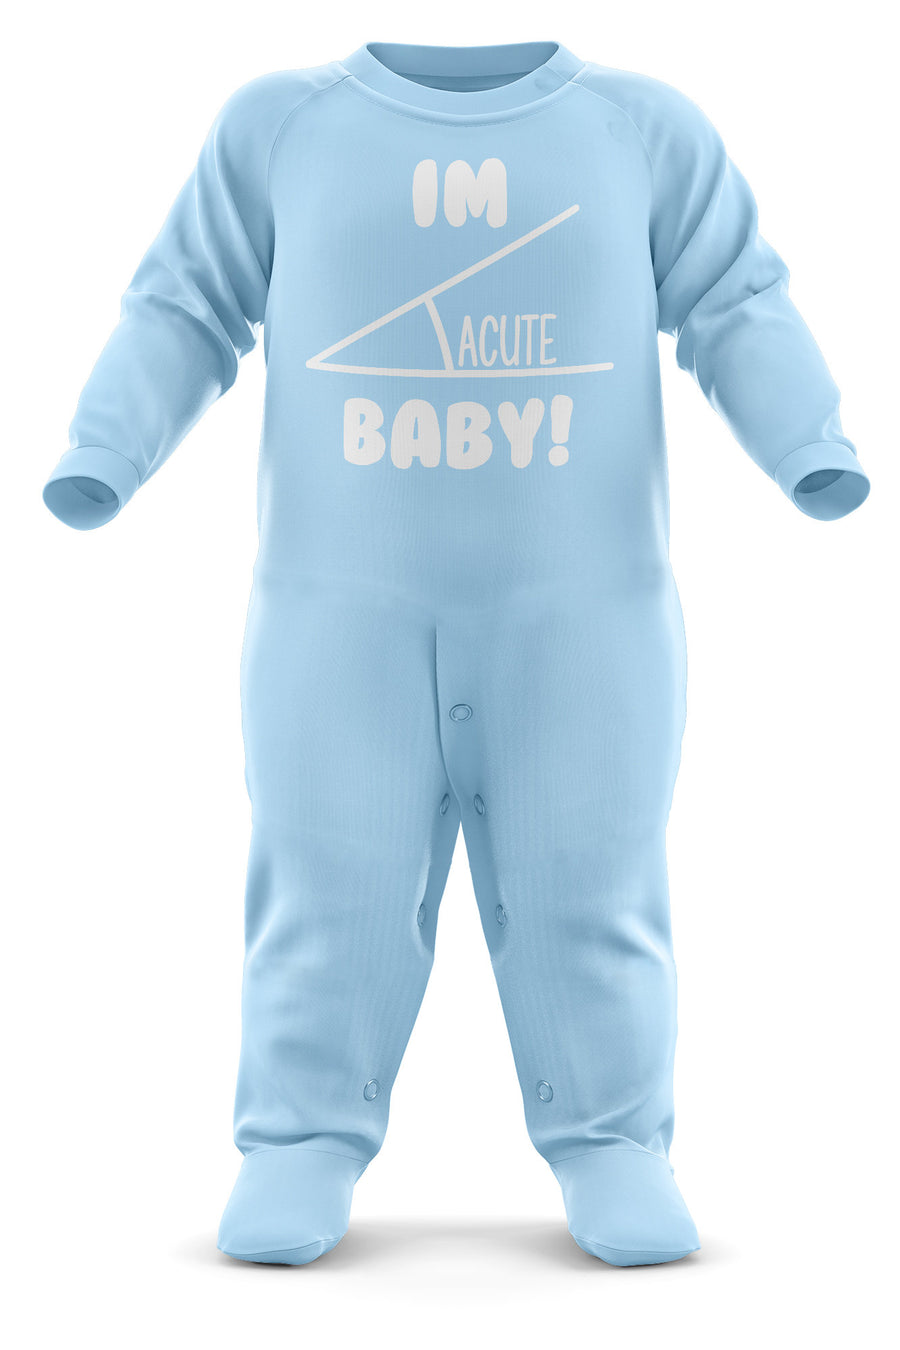 I'm ACUTE Baby Romper Suit - Babygrow Baby Newborn Gifts - First Birthday/Christmas - Funny Nerdy Baby Sleepsuit